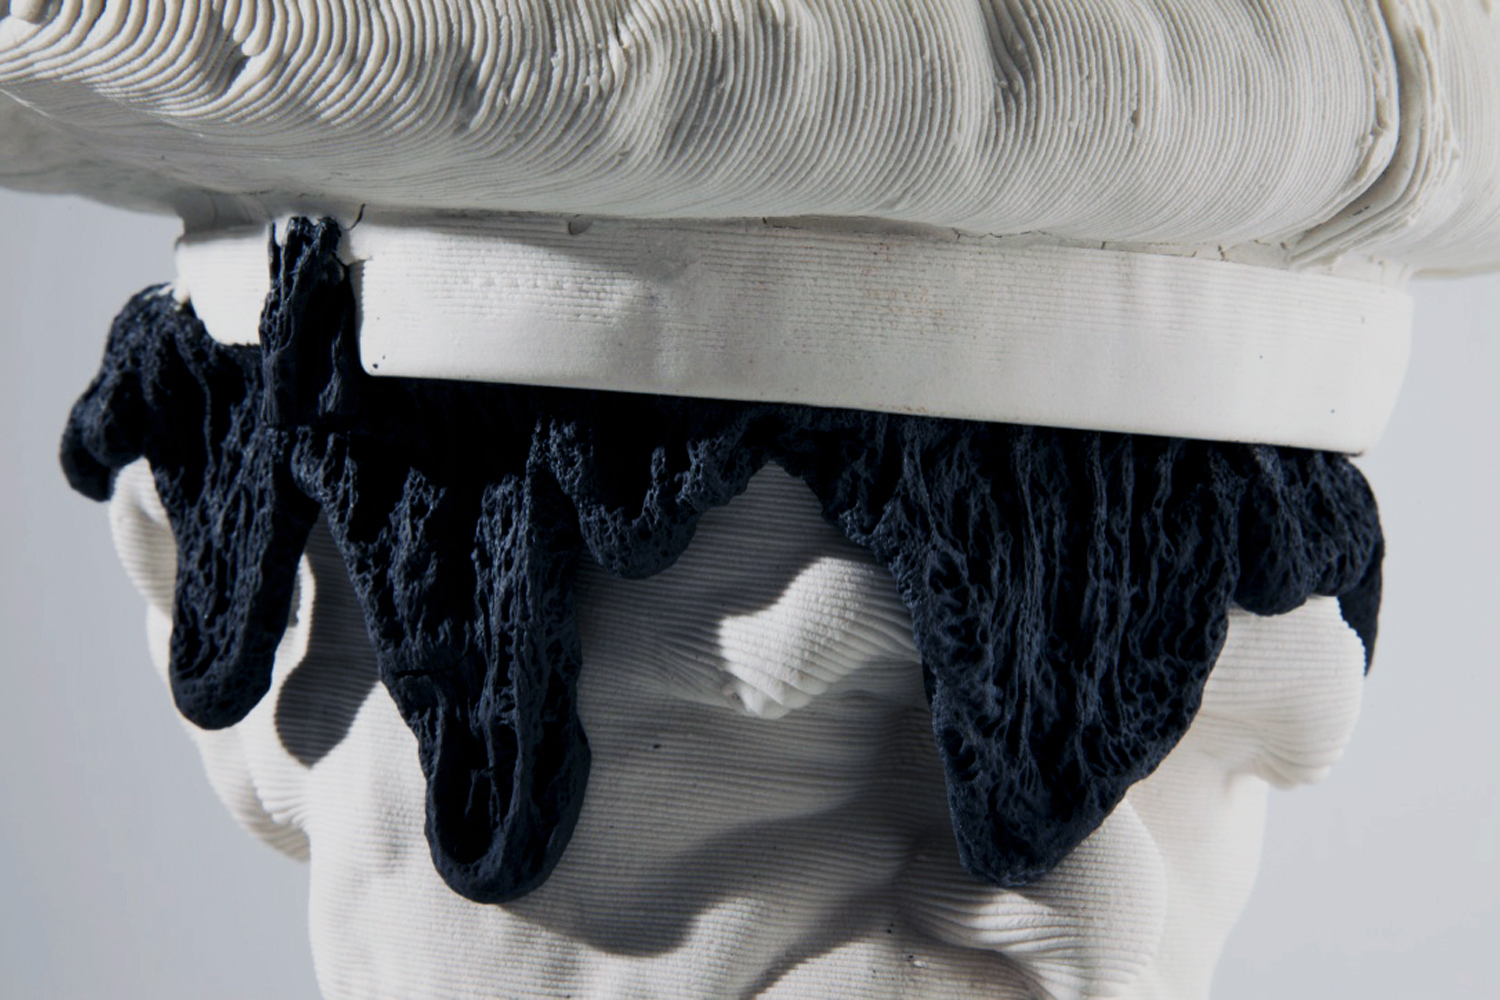 Empirical Pop Detail 2019  3d printed porcelain and nylon, steel  19.5in. h x 10in. w x 10in. d